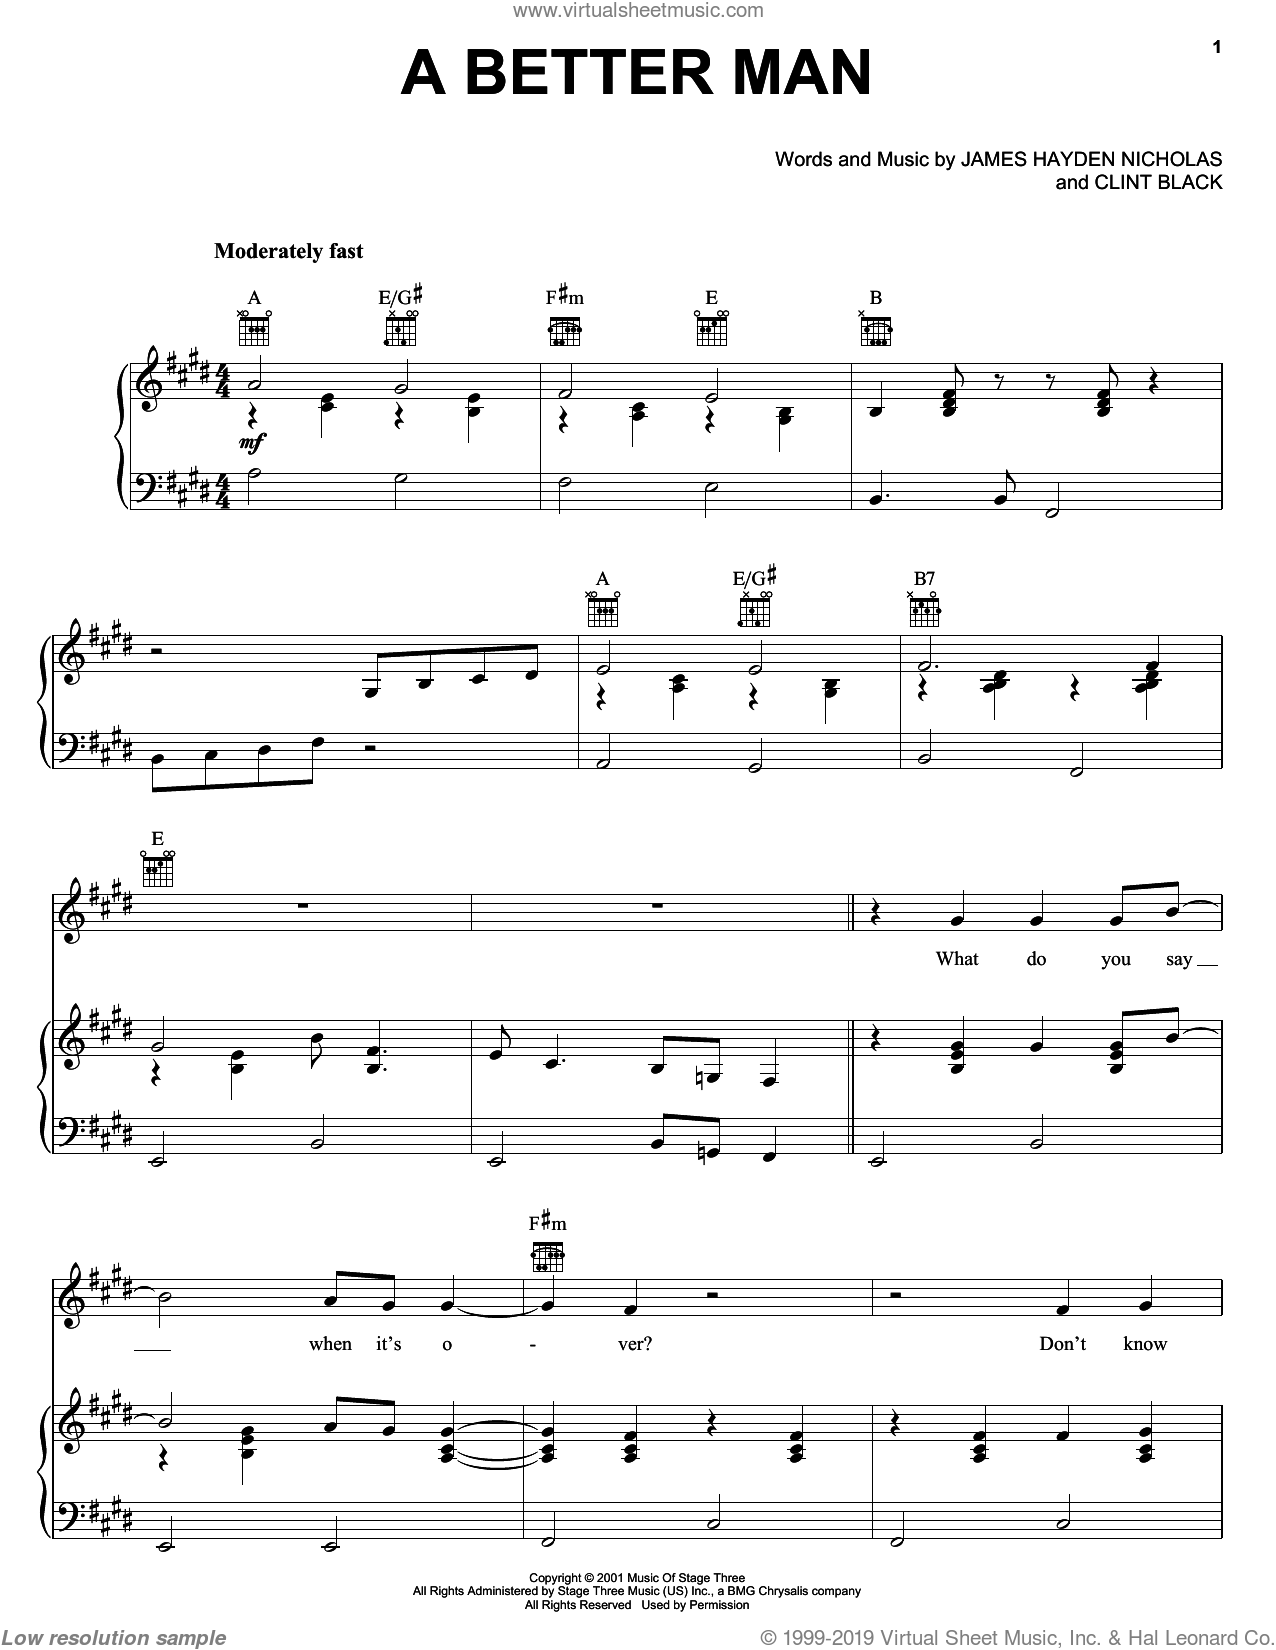 A Better Man sheet music for voice, piano or guitar by Clint Black and James Hayden Nicholas. Score Image Preview.